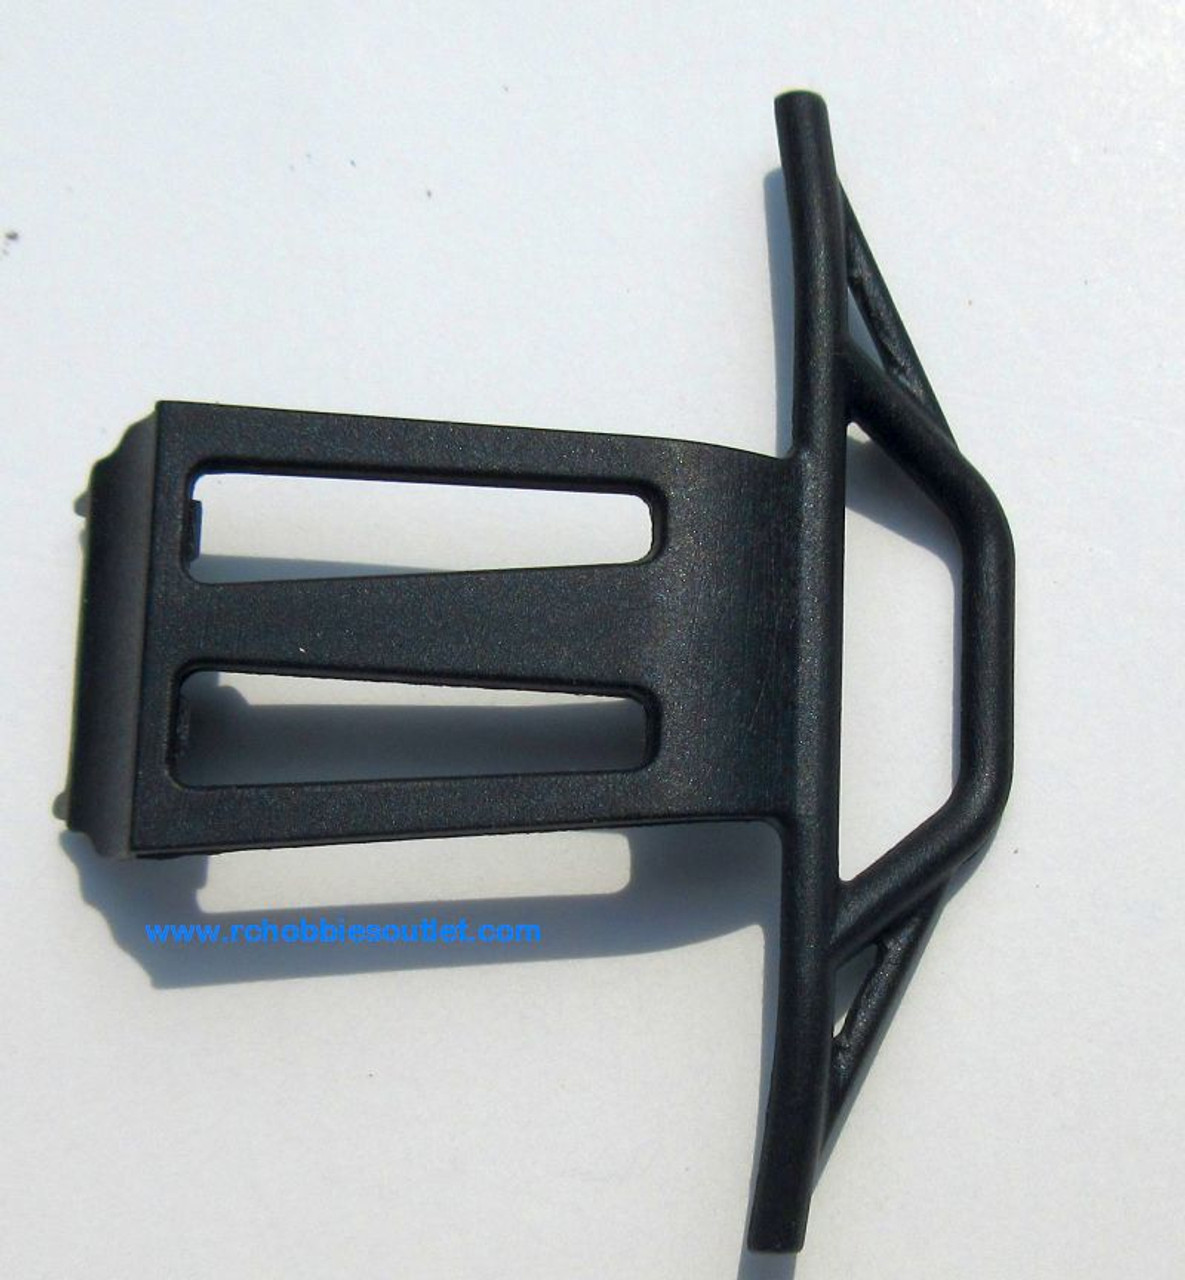 24647 Front Bumper for  1/24 scale HSP and ECX RC Truggy